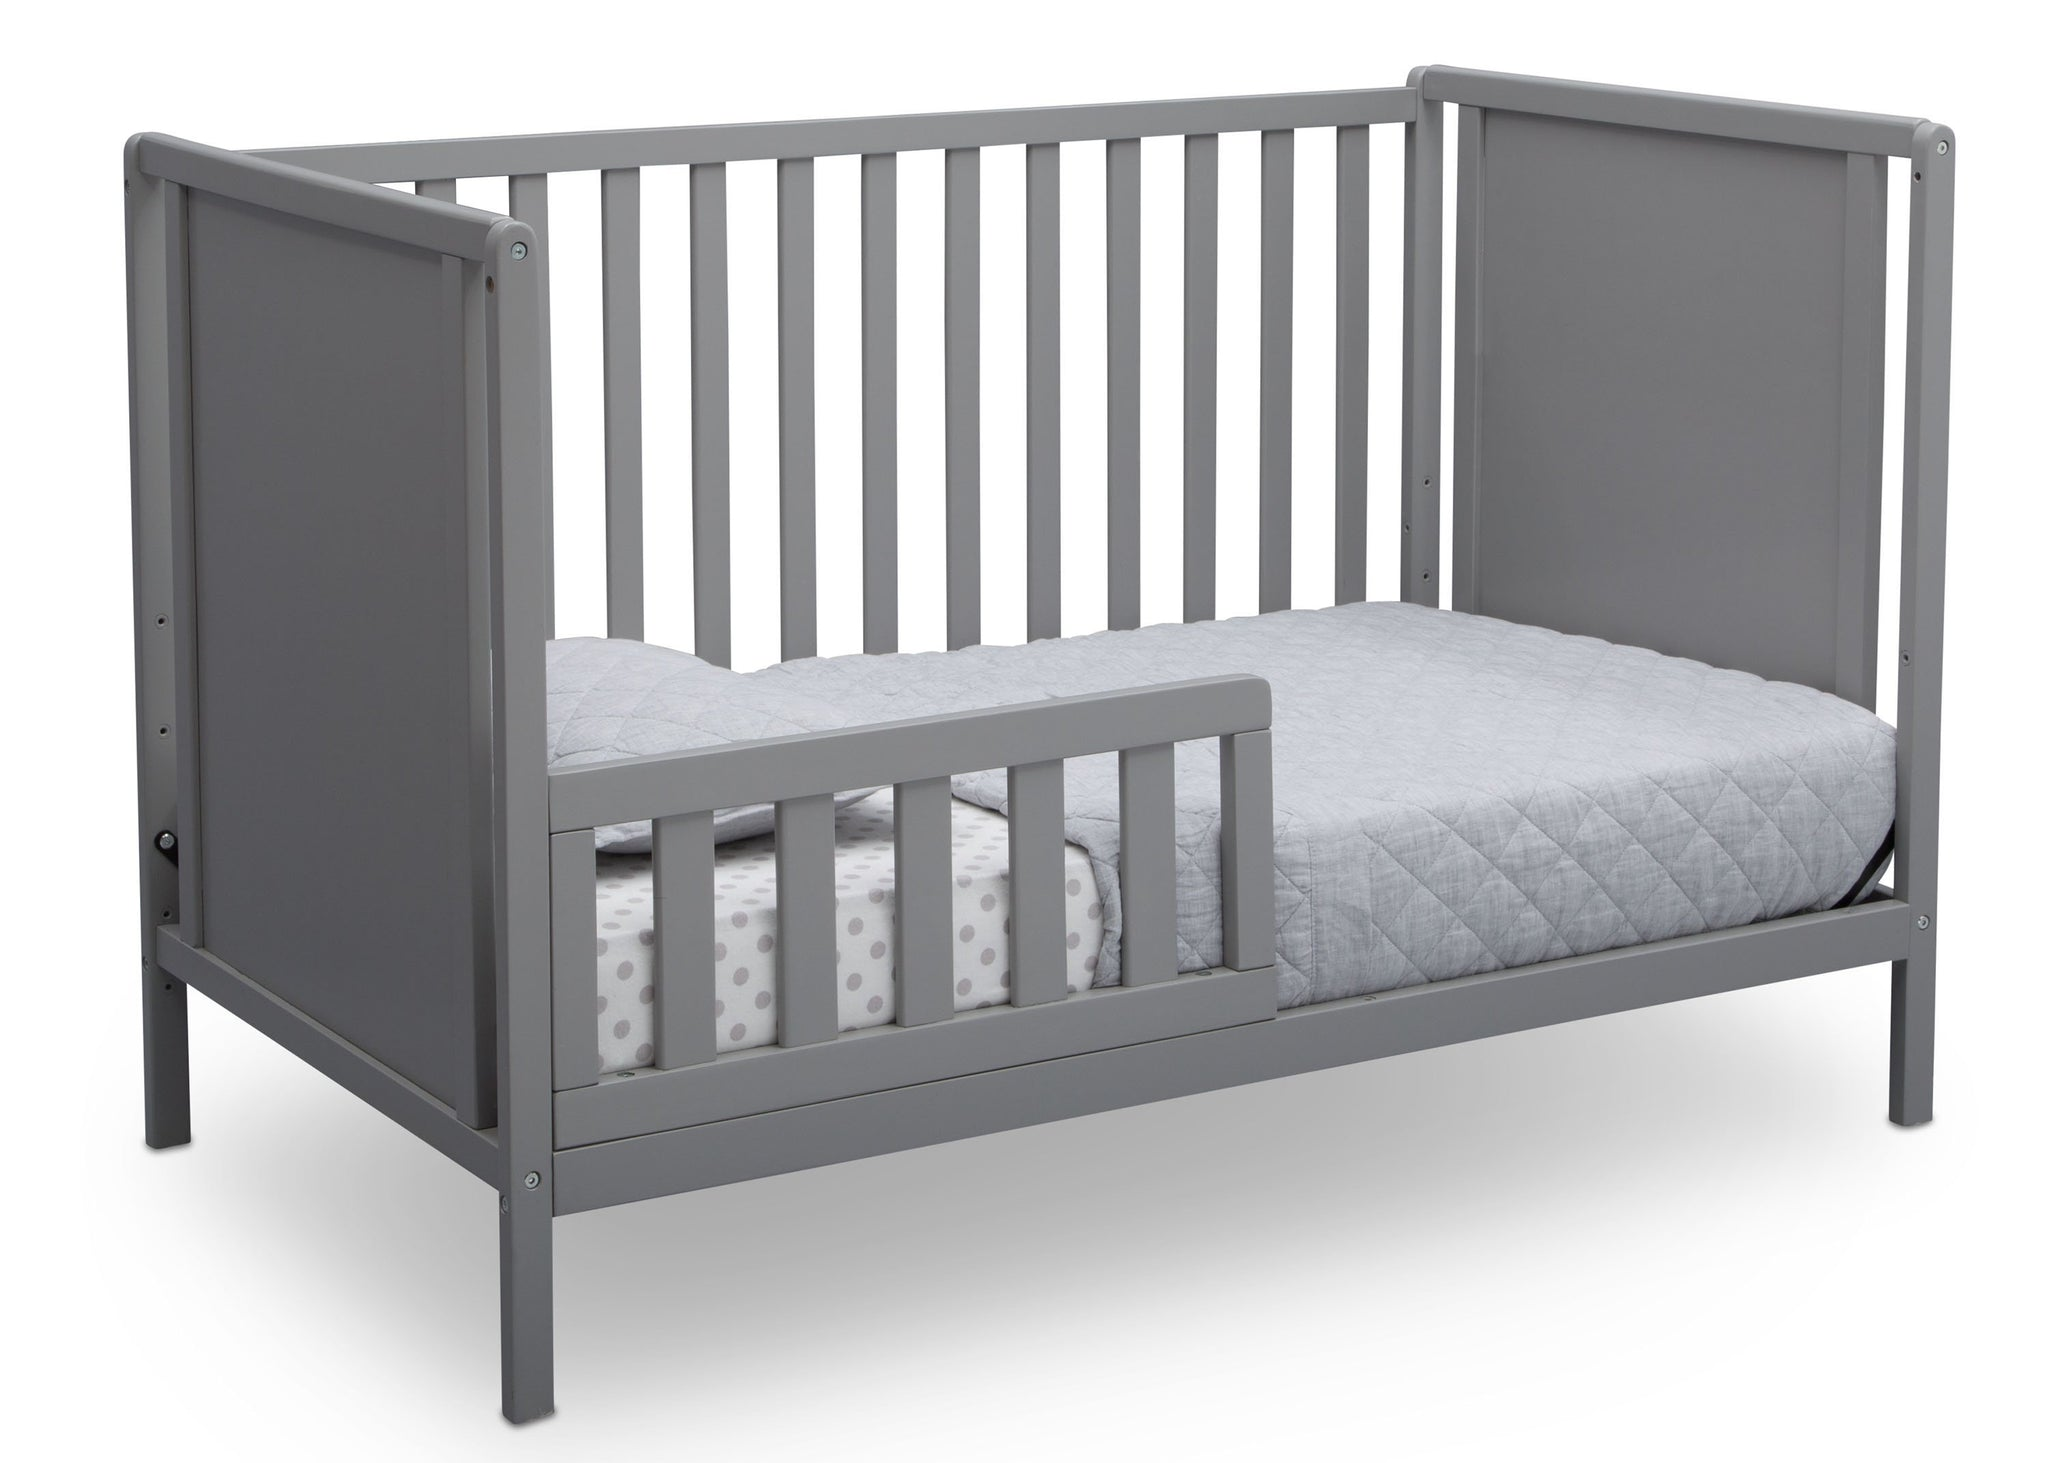 Delta Children Grey (026) Heartland Classic 4-in-1 Convertible Crib, Toddler Bed Angle, a4a